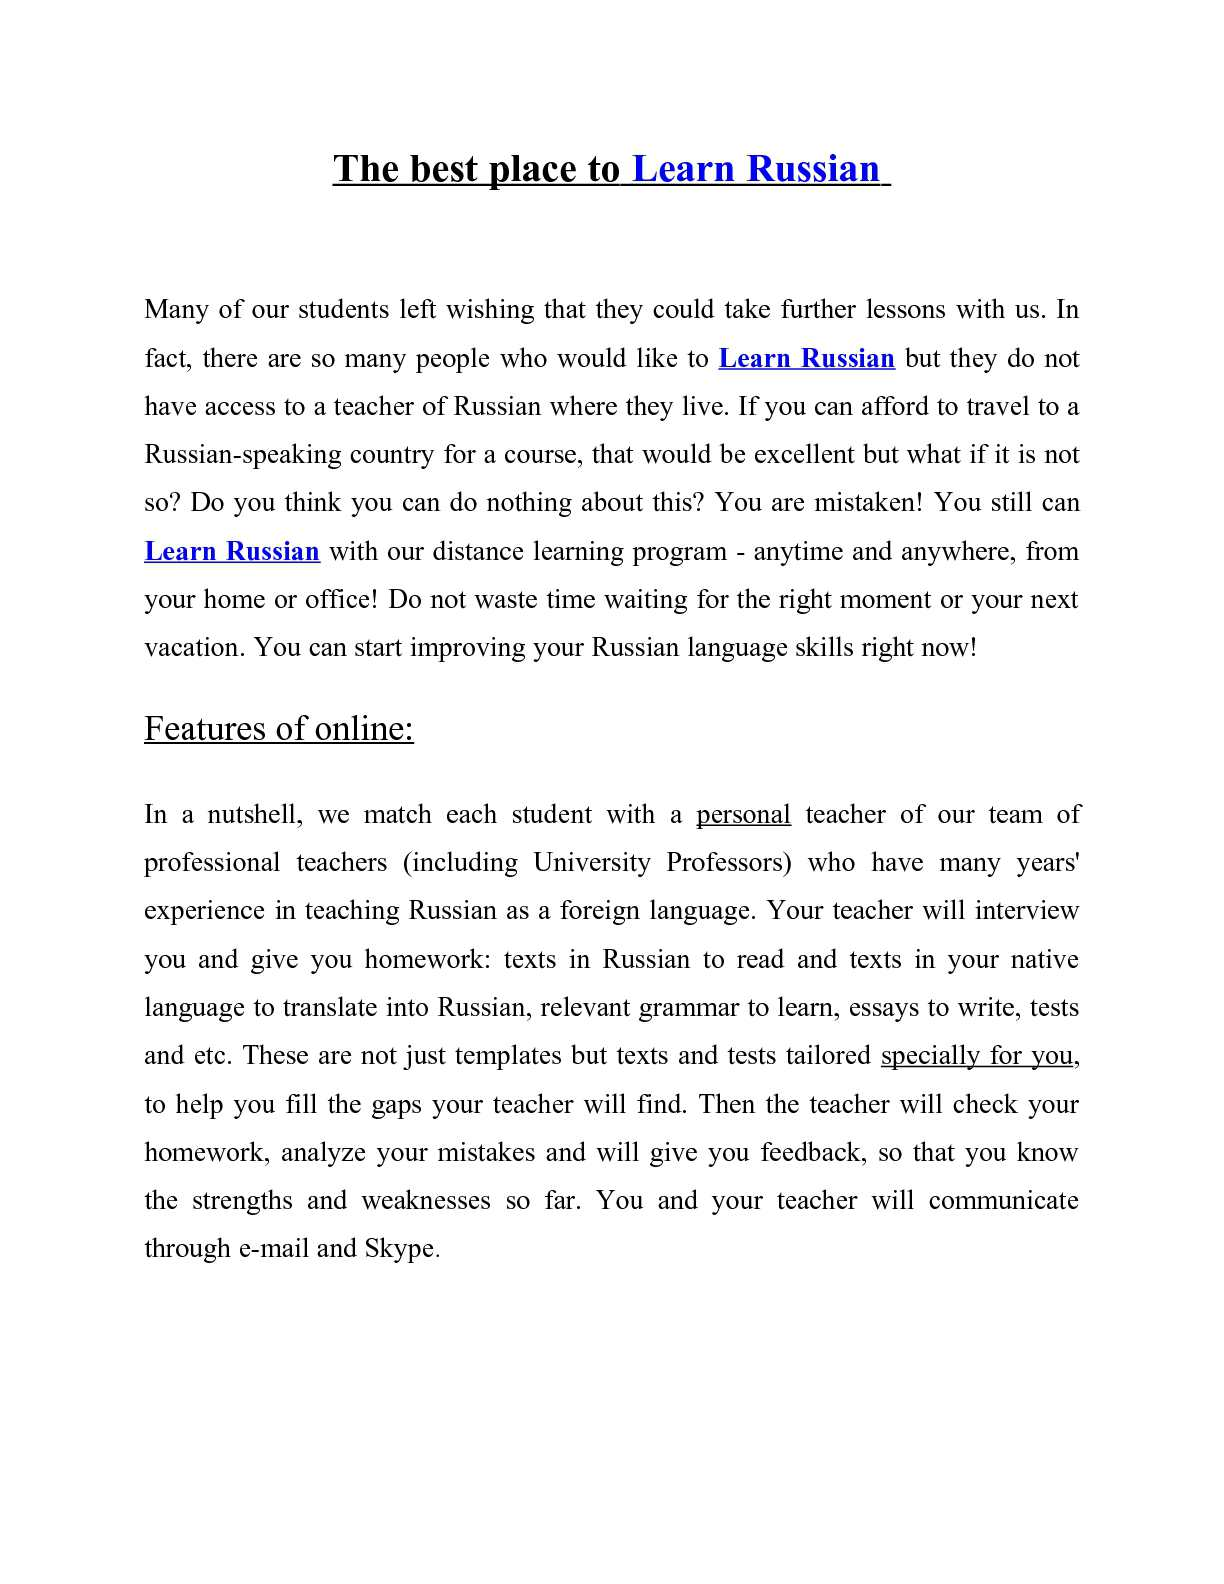 Essay on Russia: what you can write 20